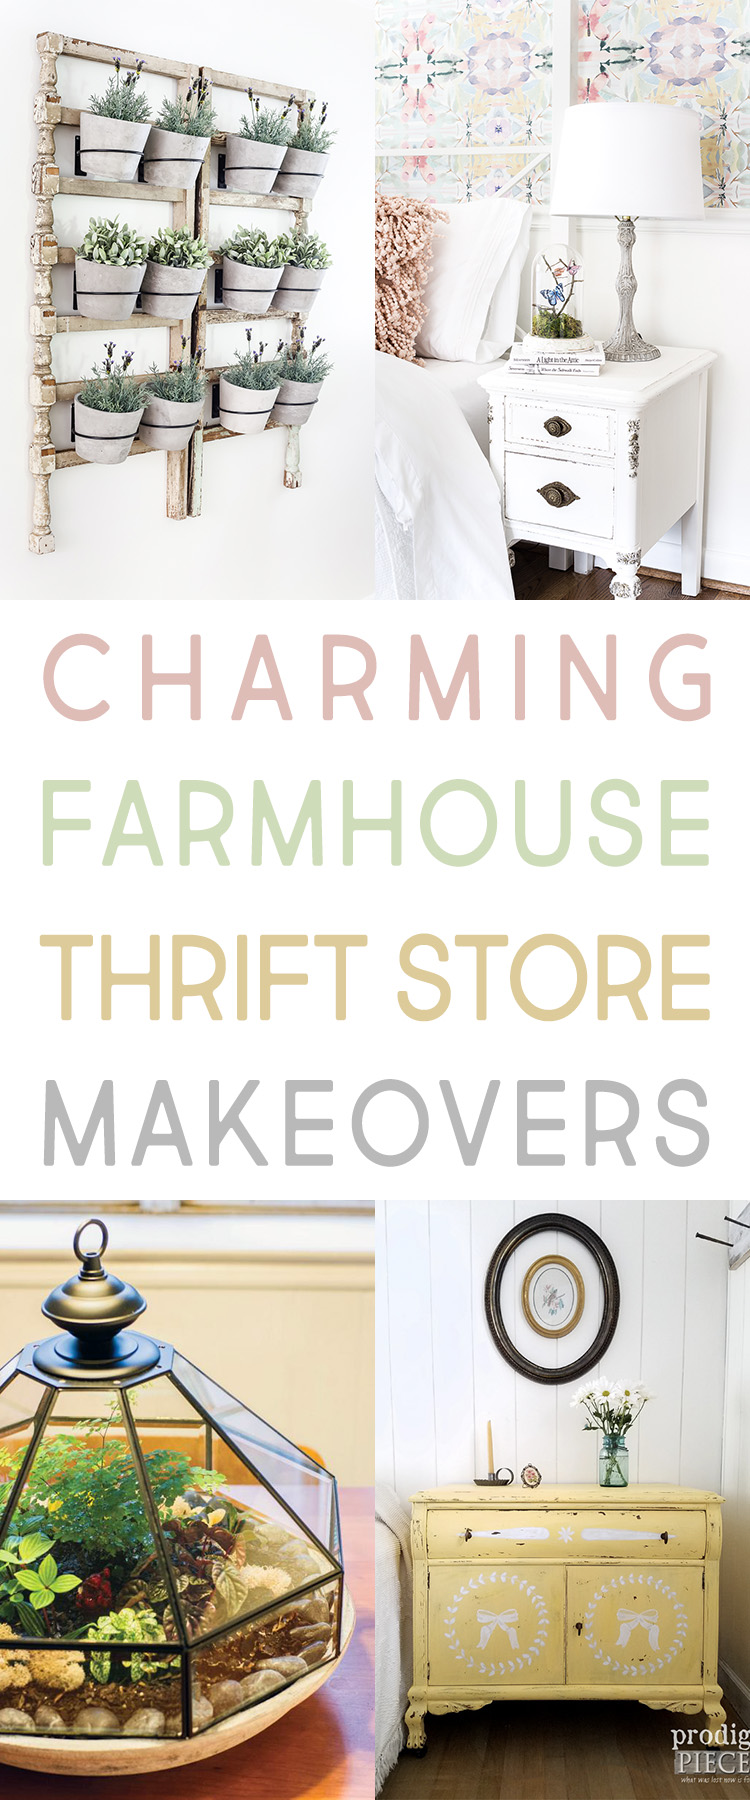 Charming Farmhouse Thrift Store Makeovers